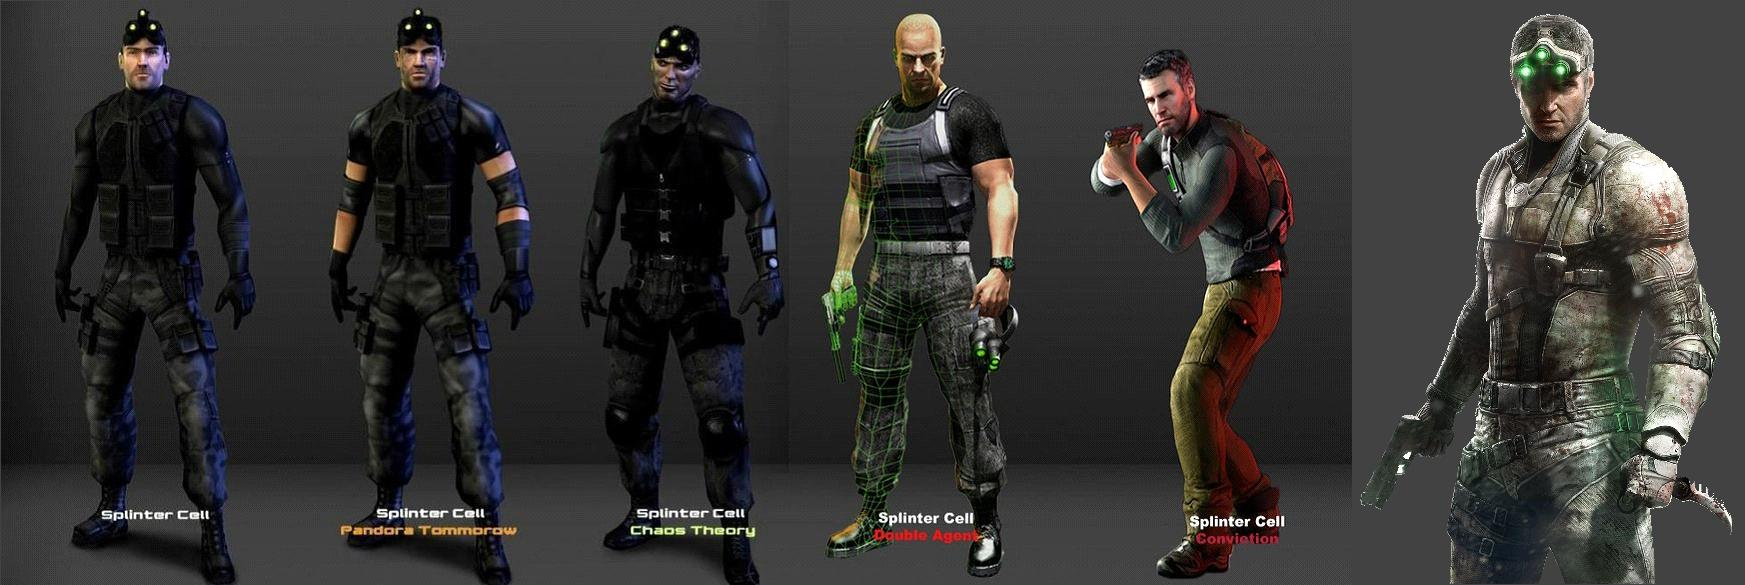 Splinter Cell Blacklist Скачать